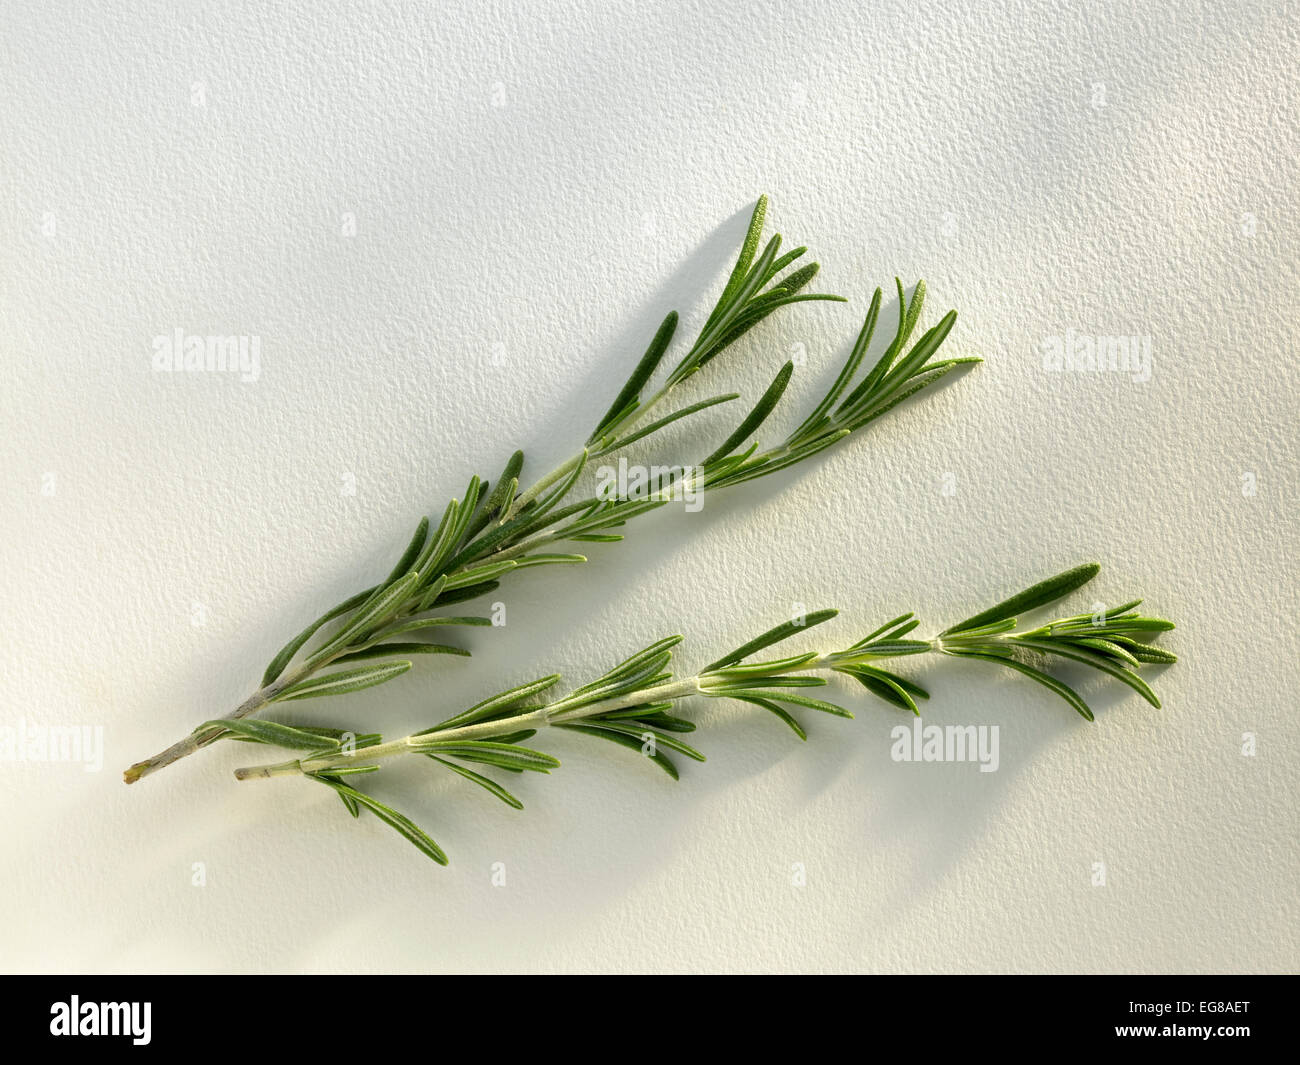 herbs: rosemary - Stock Image